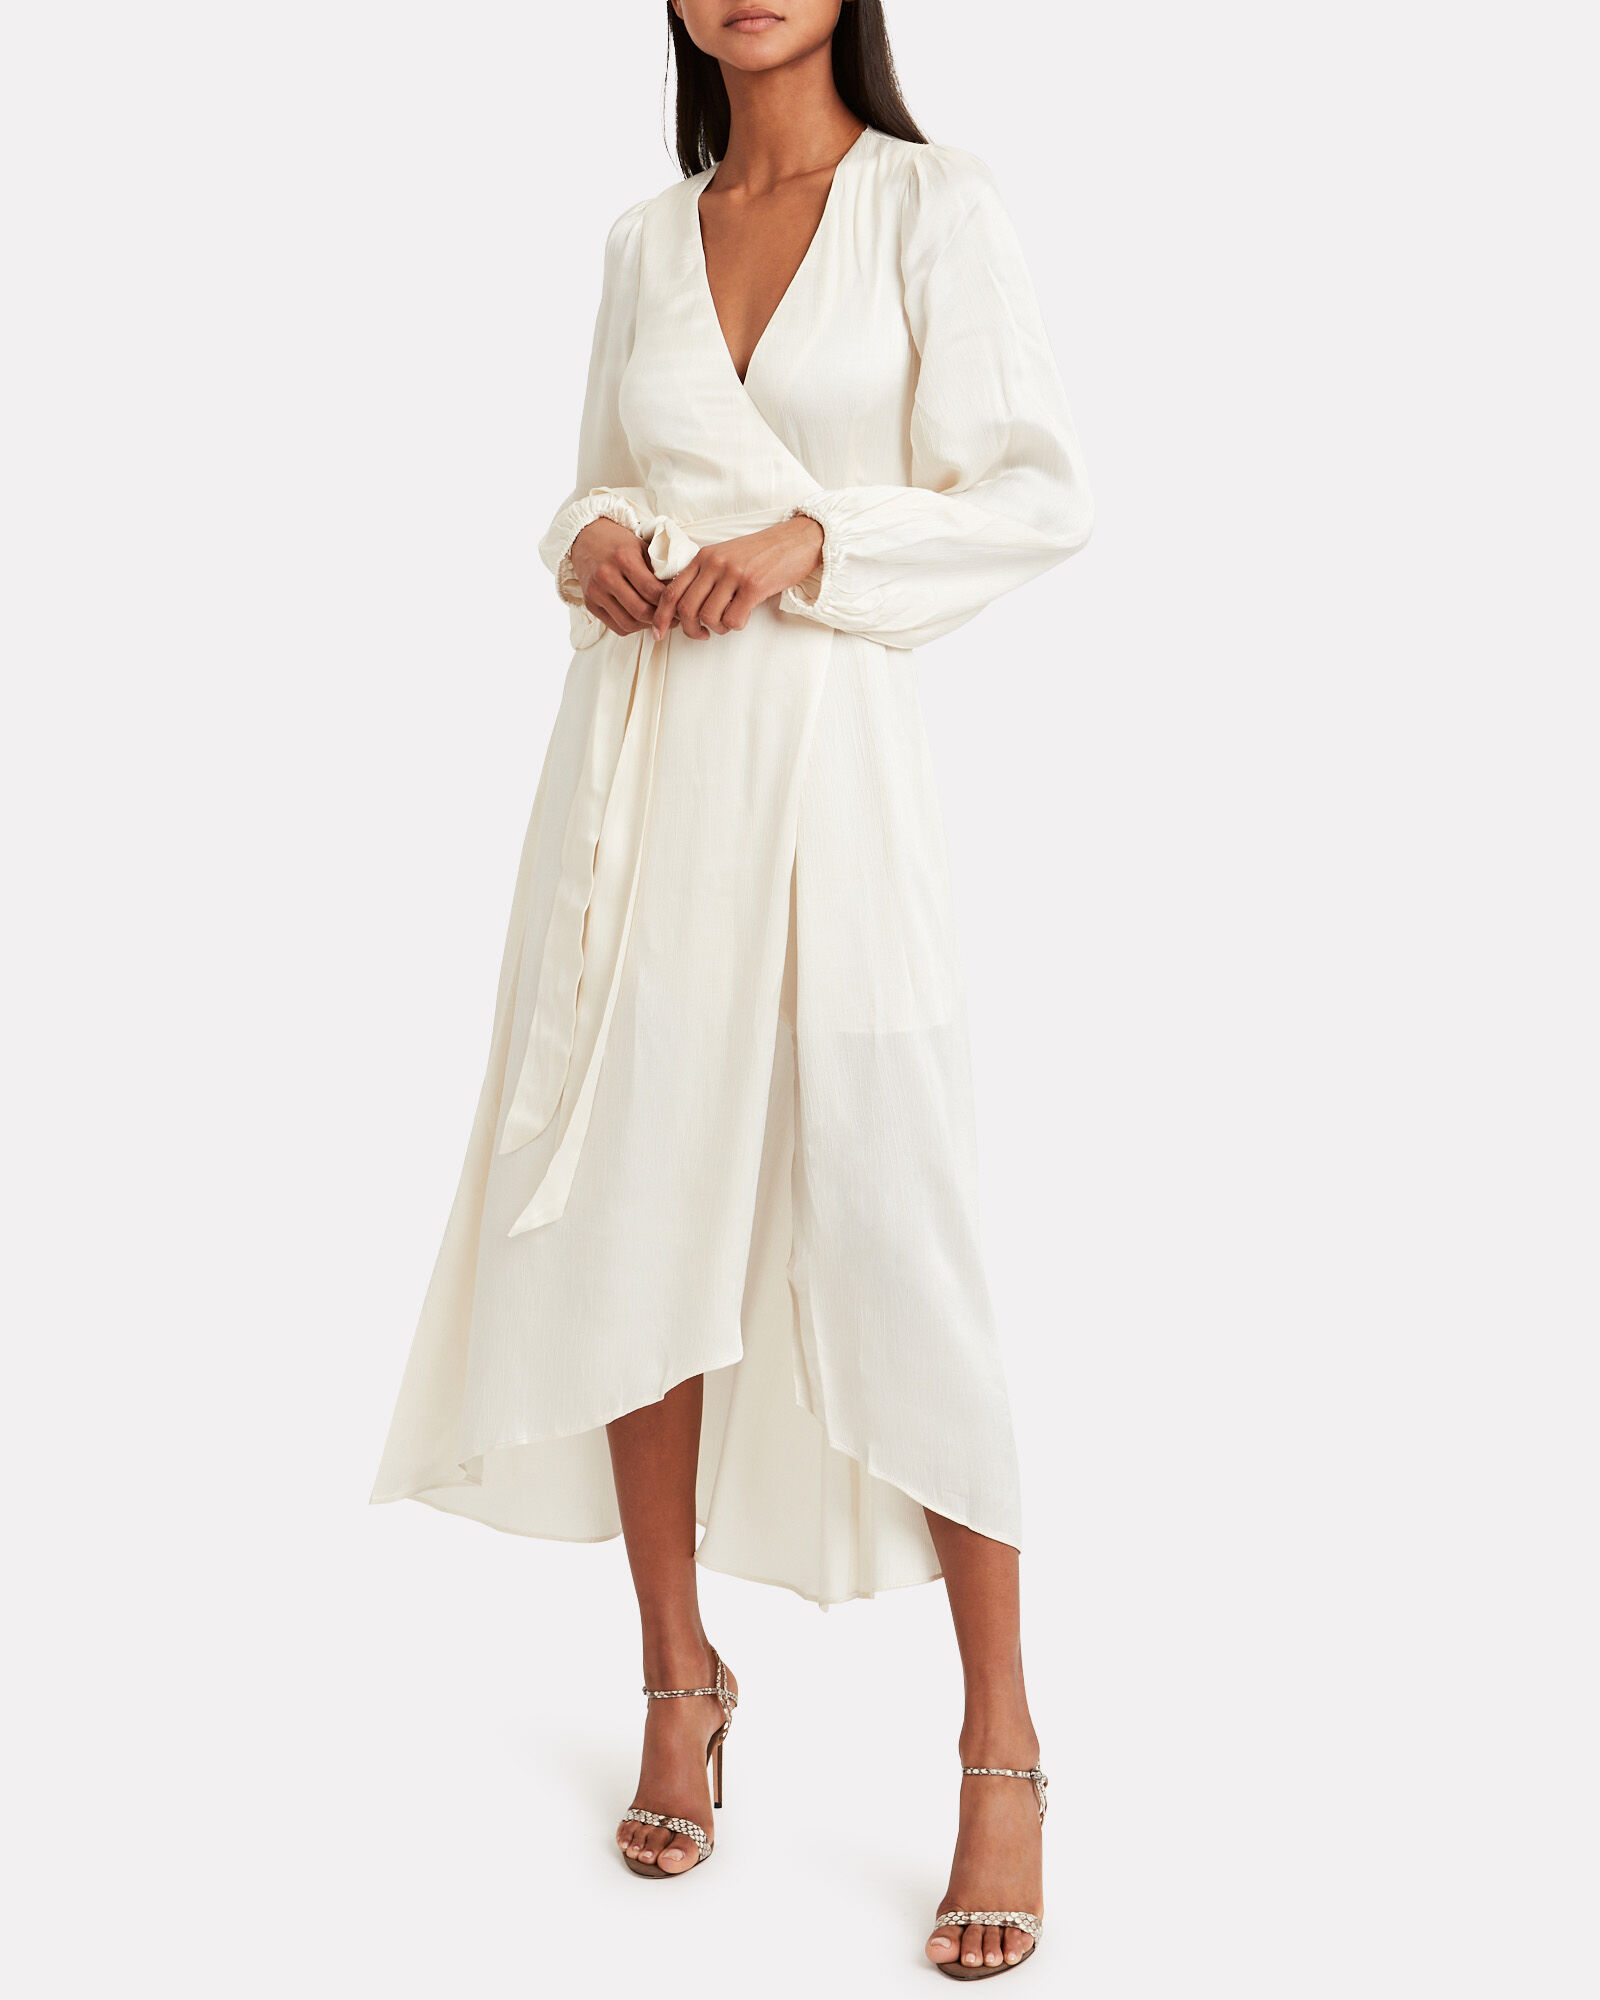 Elton Satin Wrap Dress, IVORY, hi-res